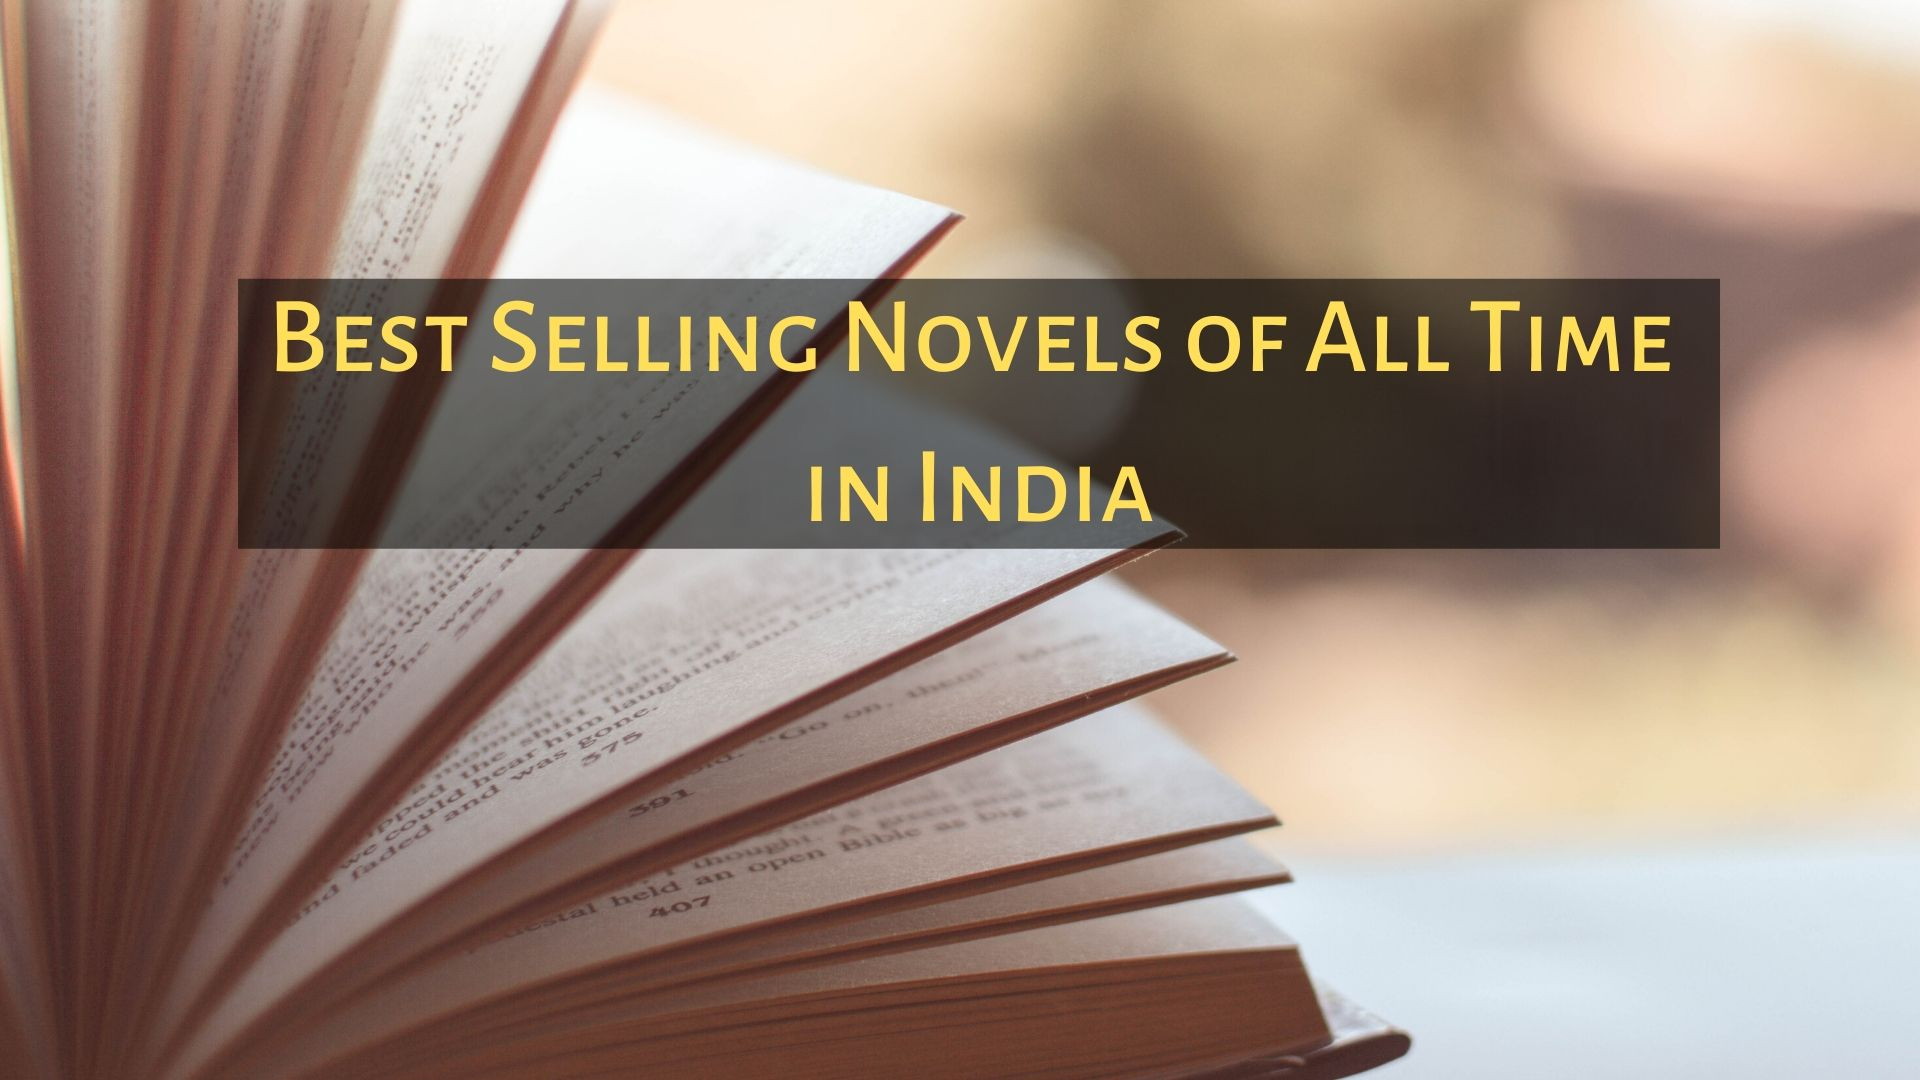 Best Selling Novels of All Time in India